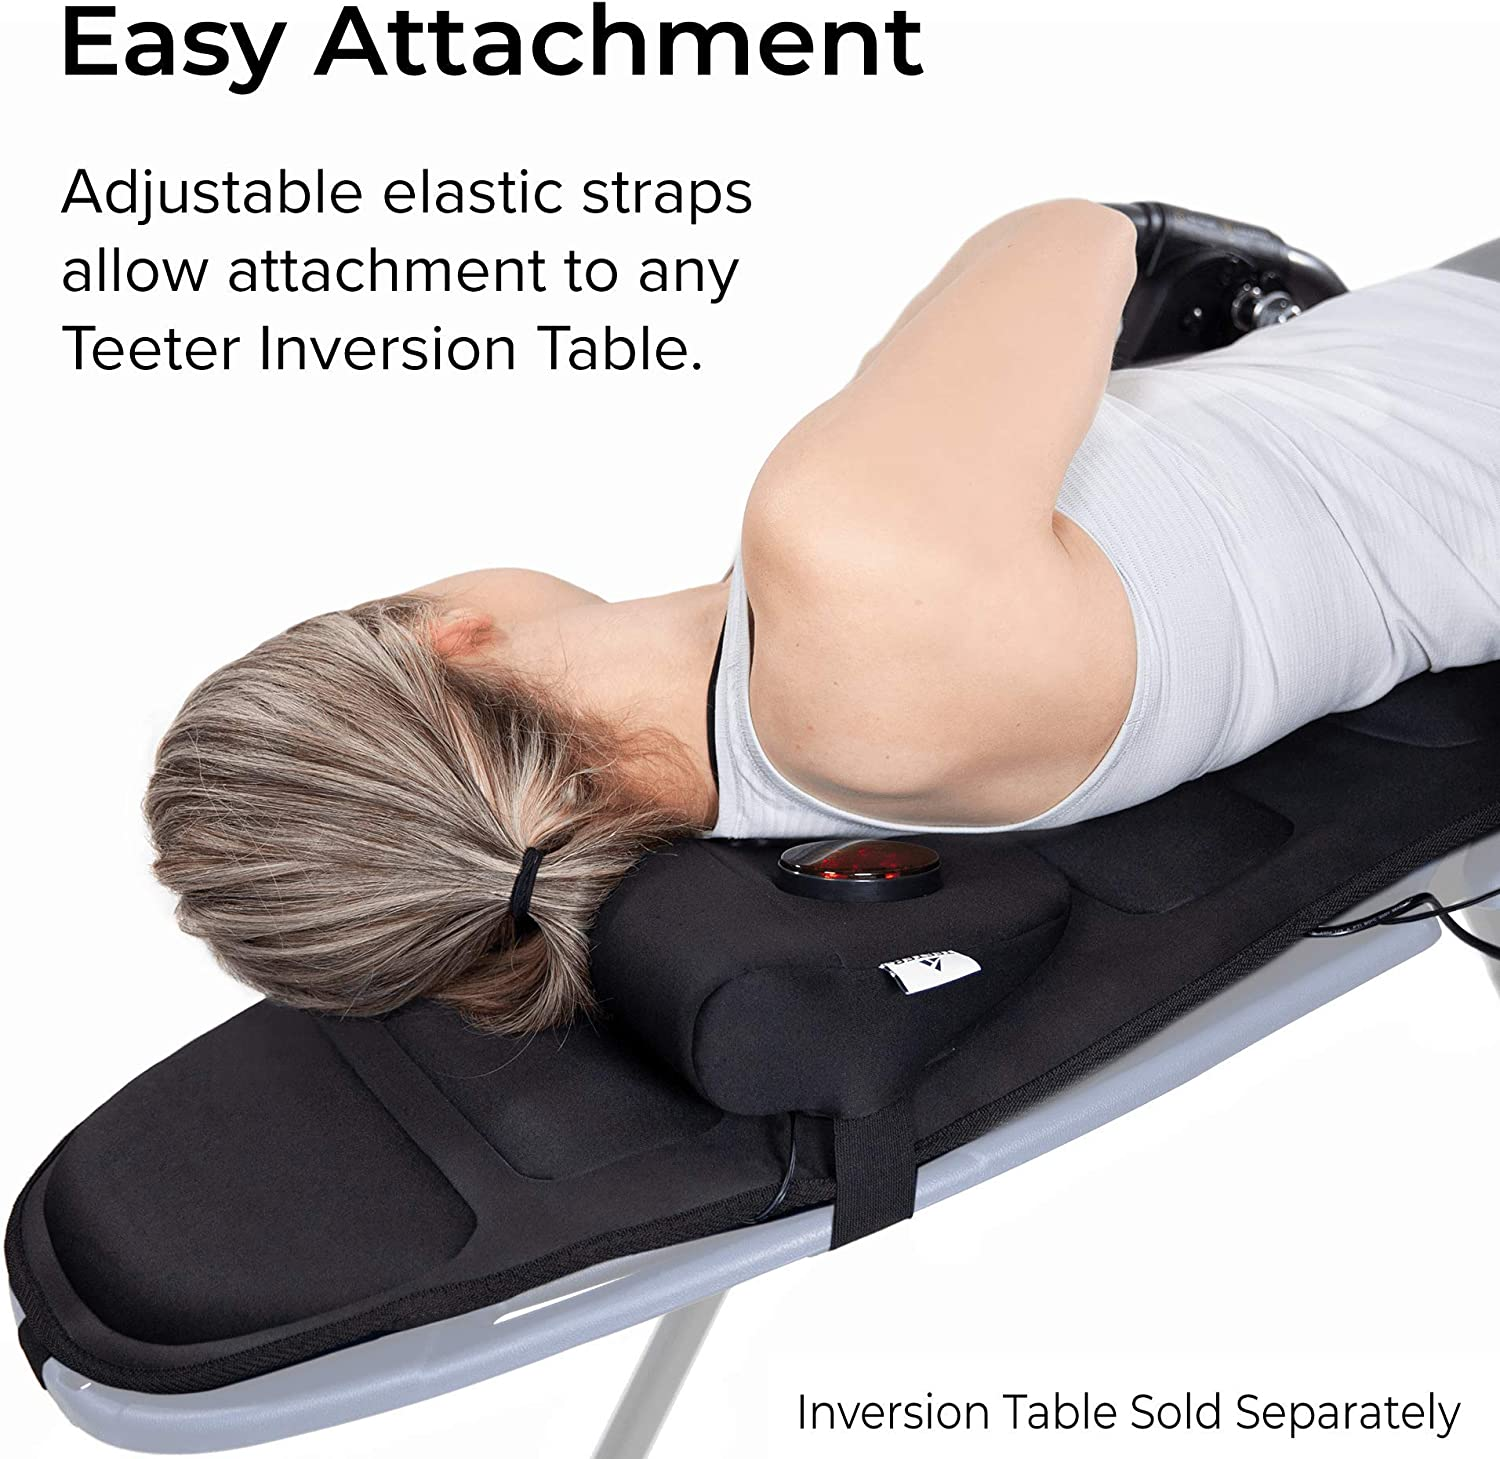 Teeter Better Back Vibration Massage Cushion with Neck Support - Accessory for Inversion Table : Inversion Equipment : Sports & Outdoors